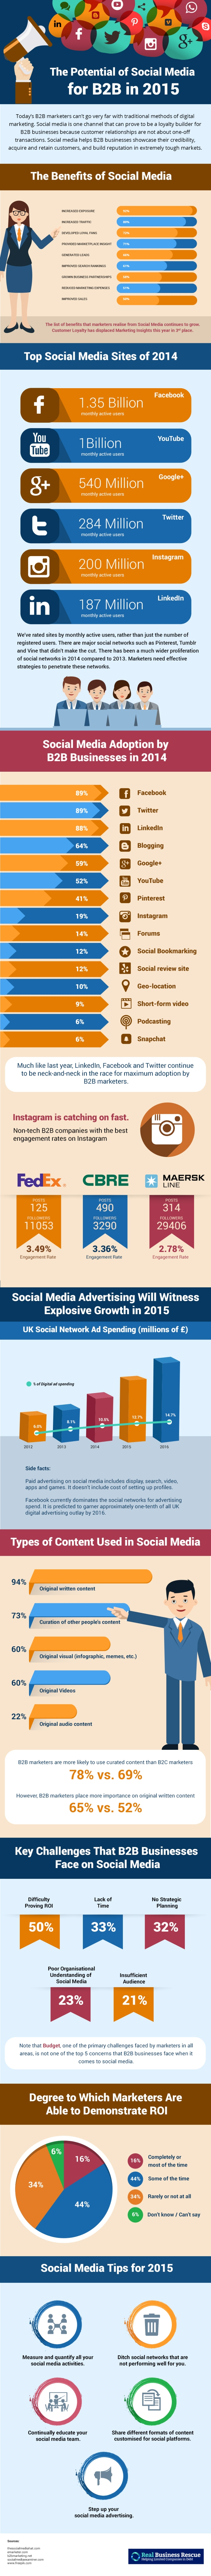 social media use trend 2015 business